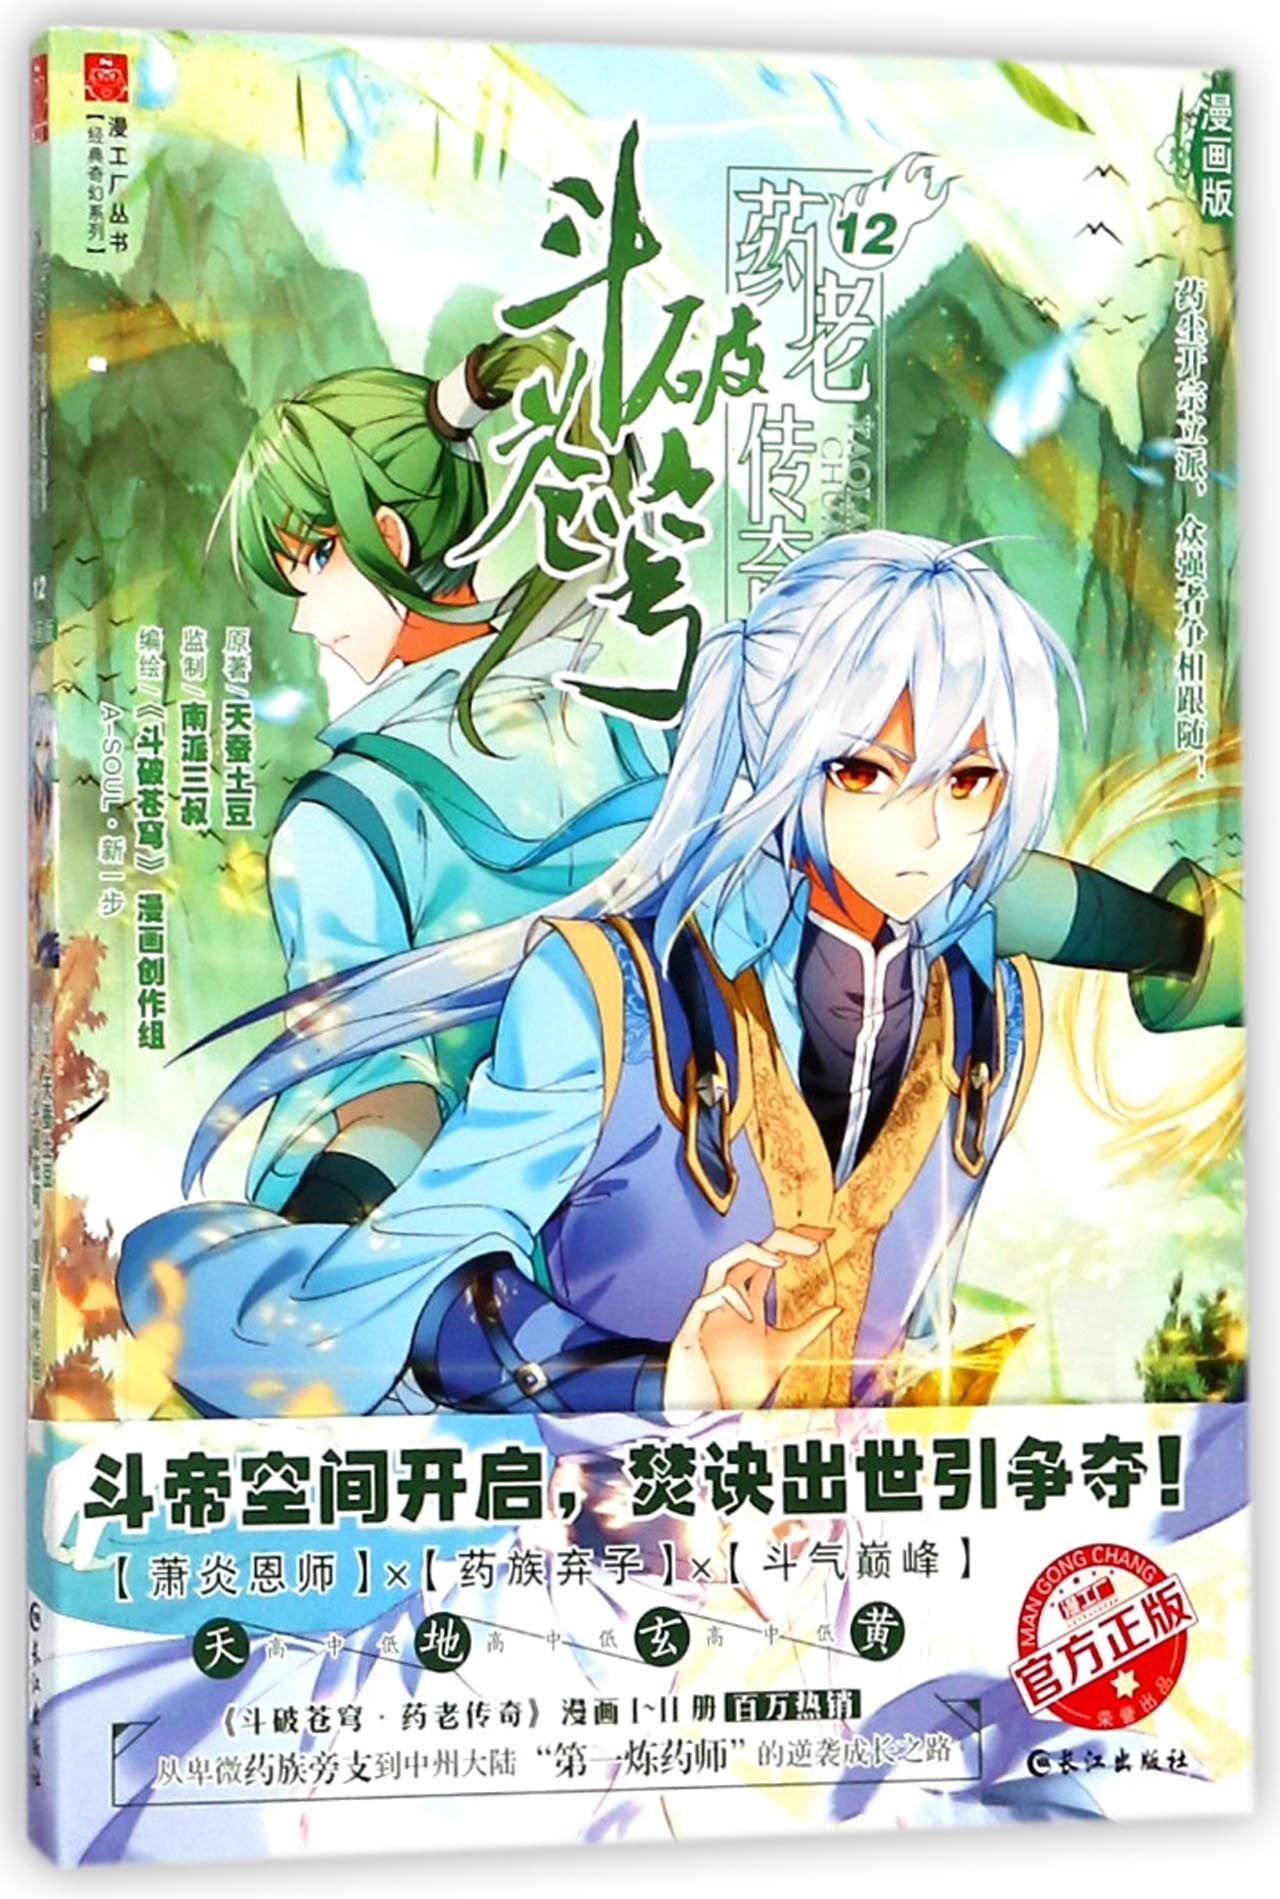 Read Online Fights Break the Sky: Legend of the Medicine King - Comic Edition 12 (Chinese Edition) ebook